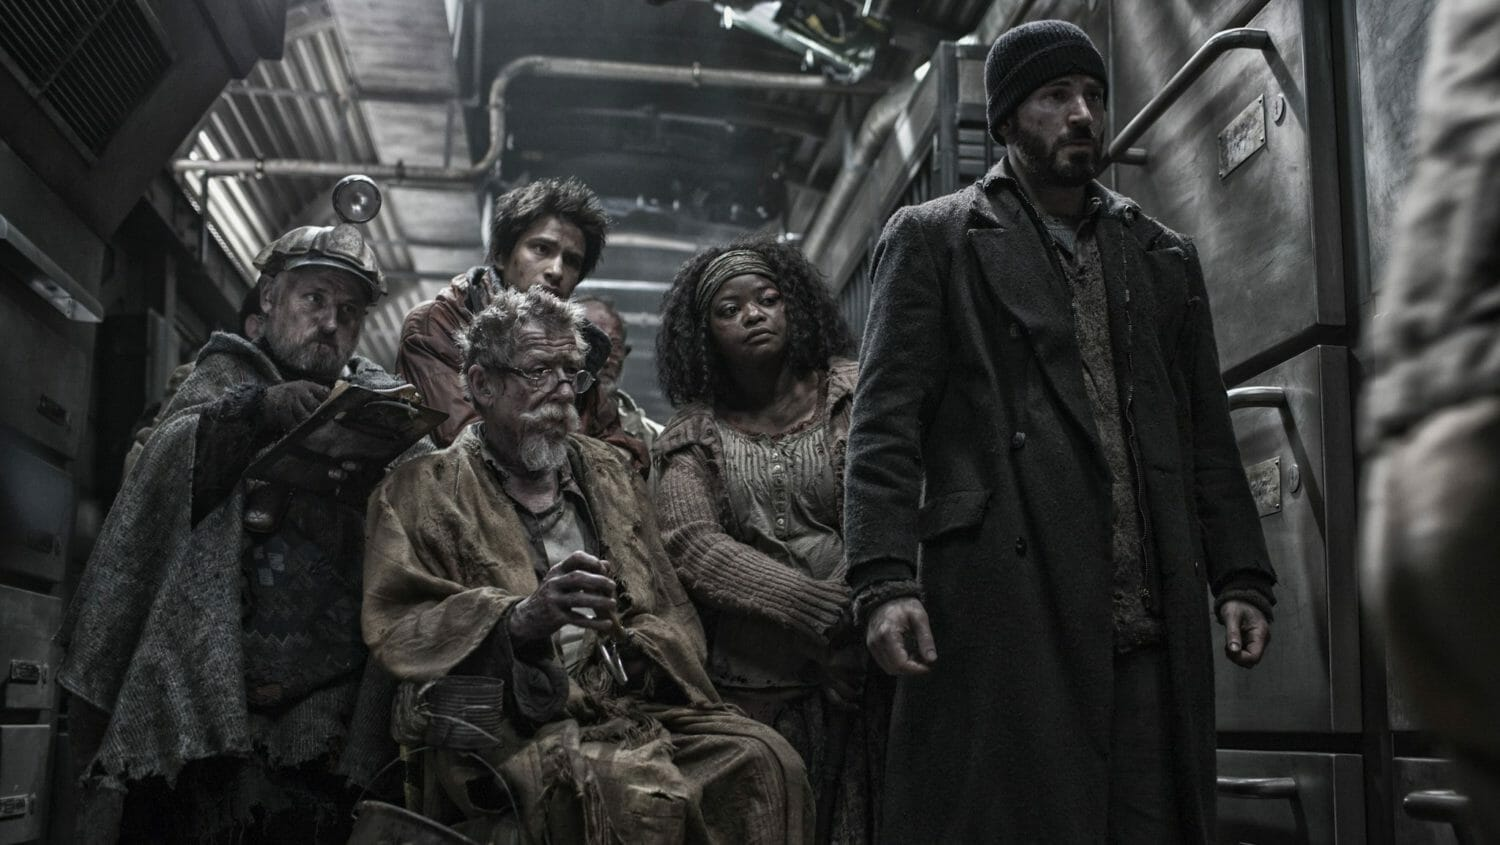 The top five feature films of 2014 - Snowpiercer